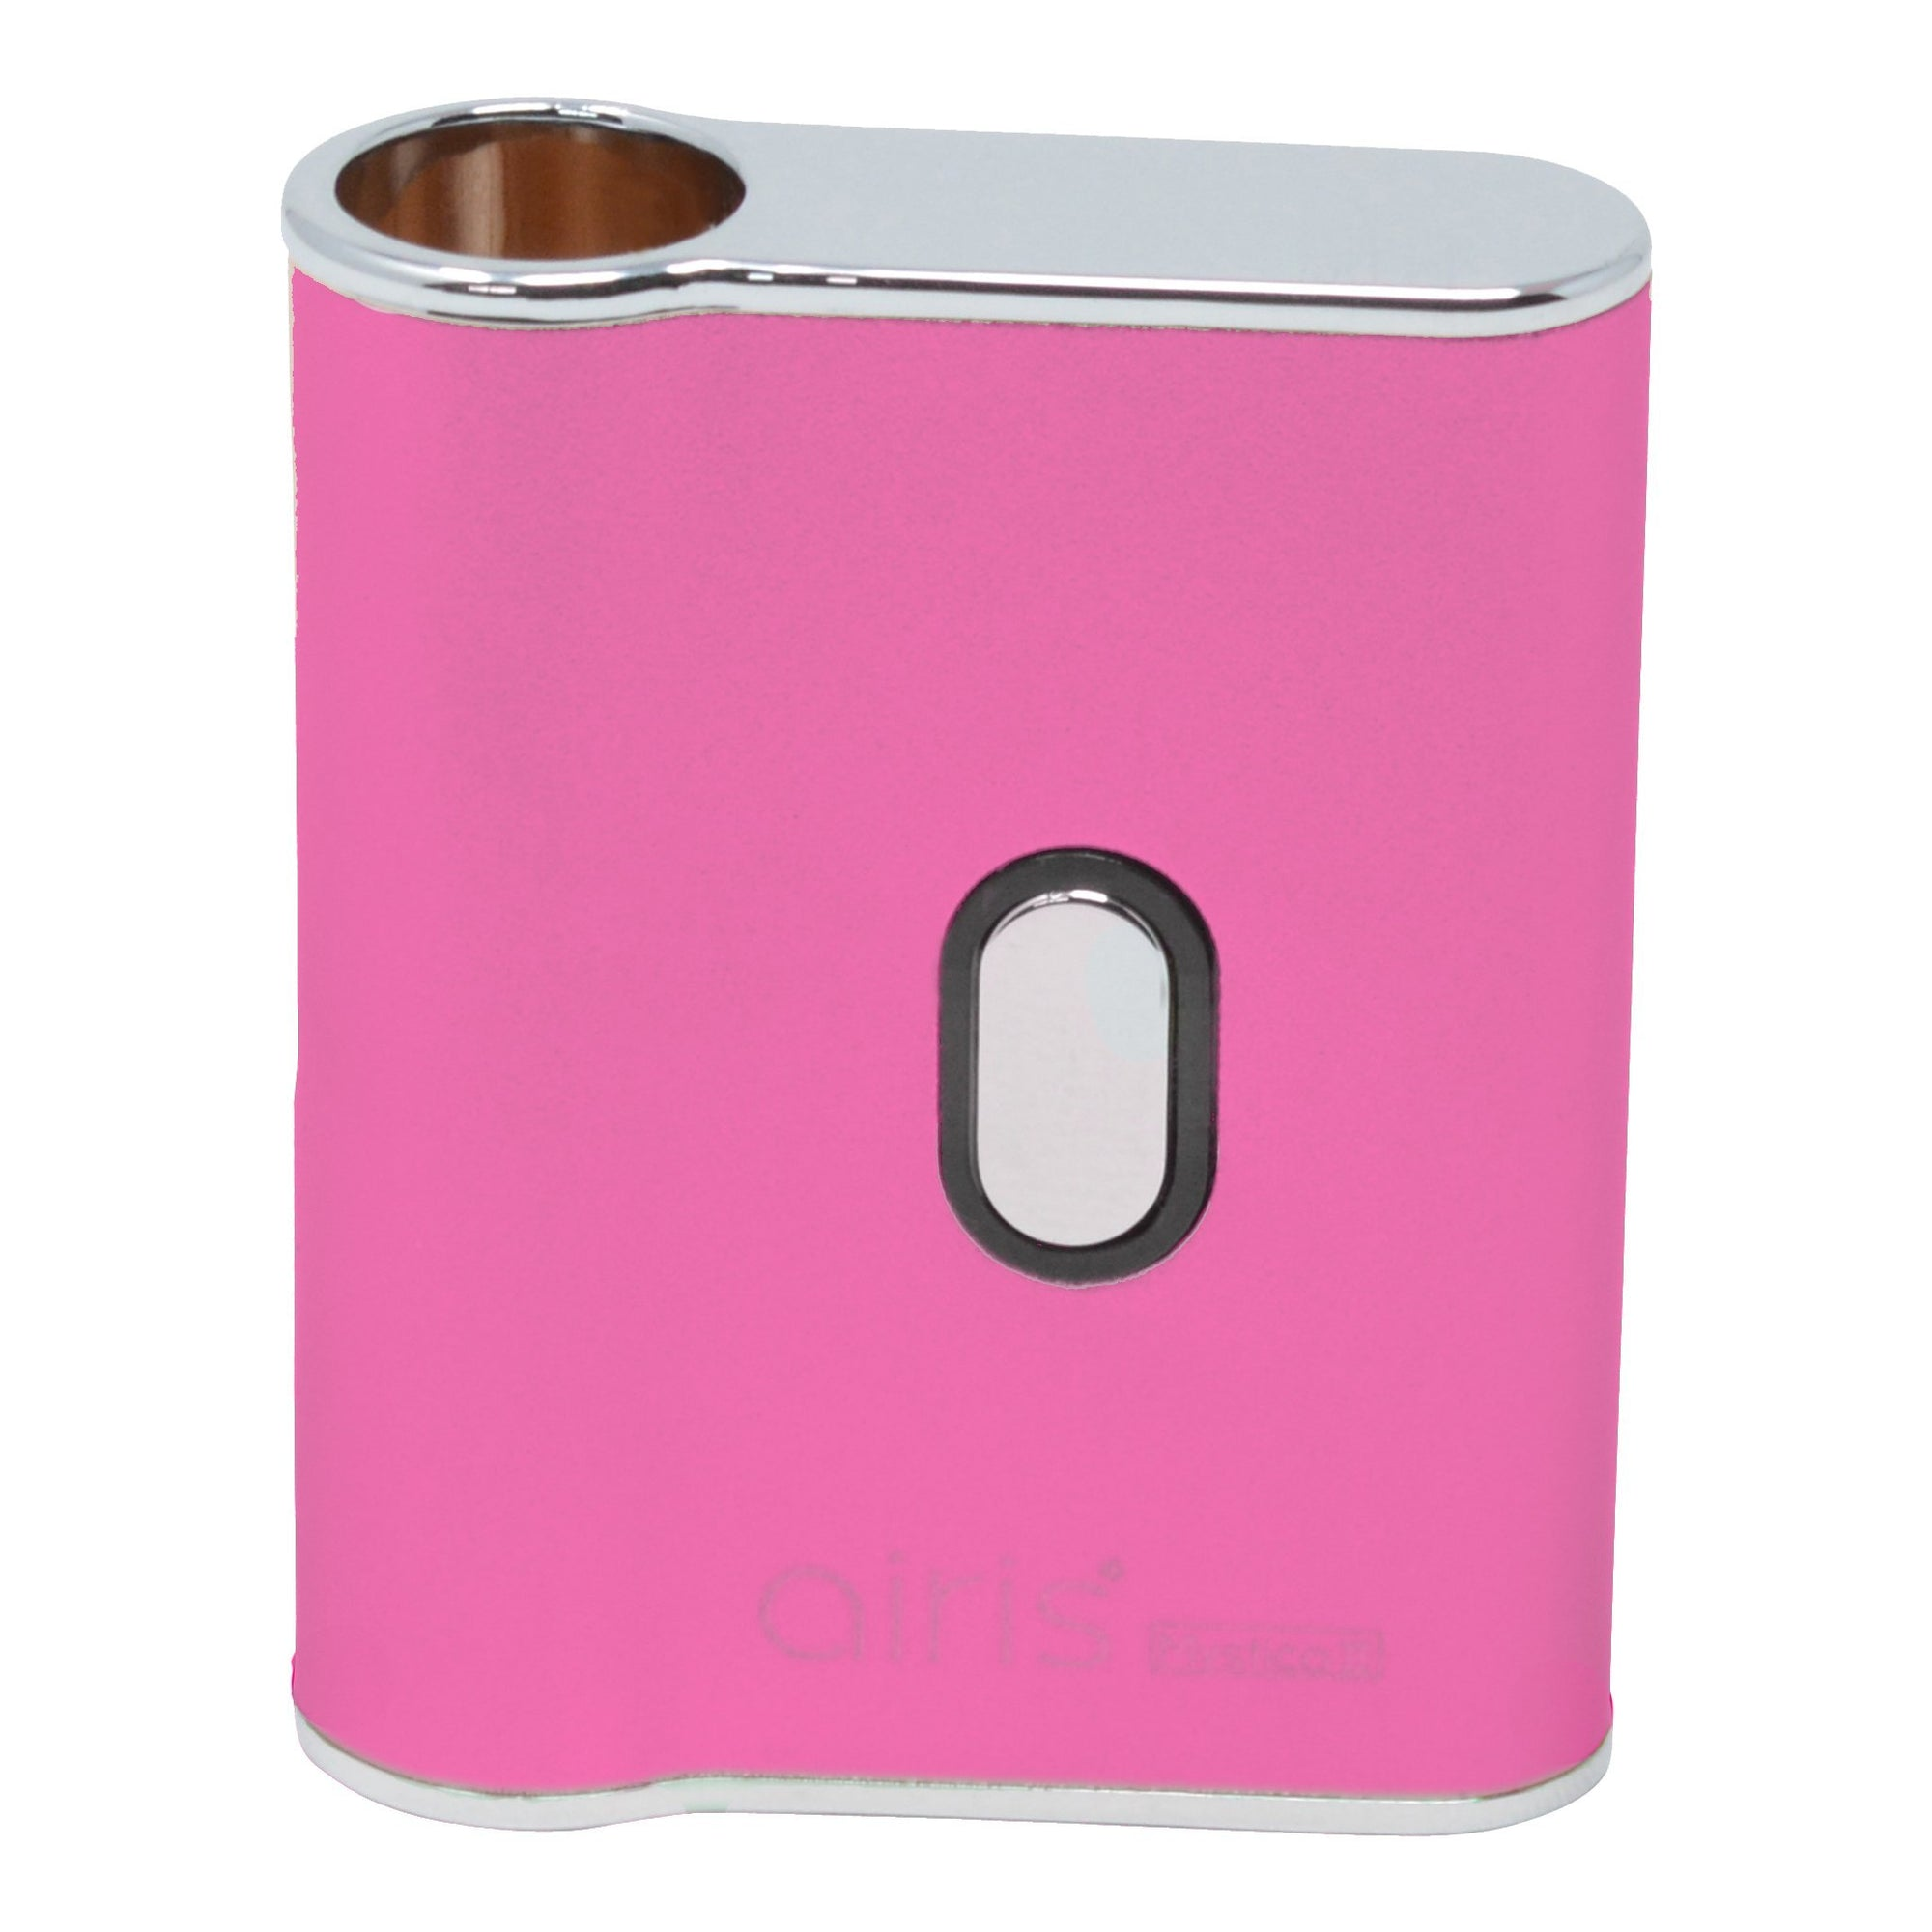 Full whole body eye level shot of Airis Mystica 2 square vaporizer smoking device in pink color, fun look